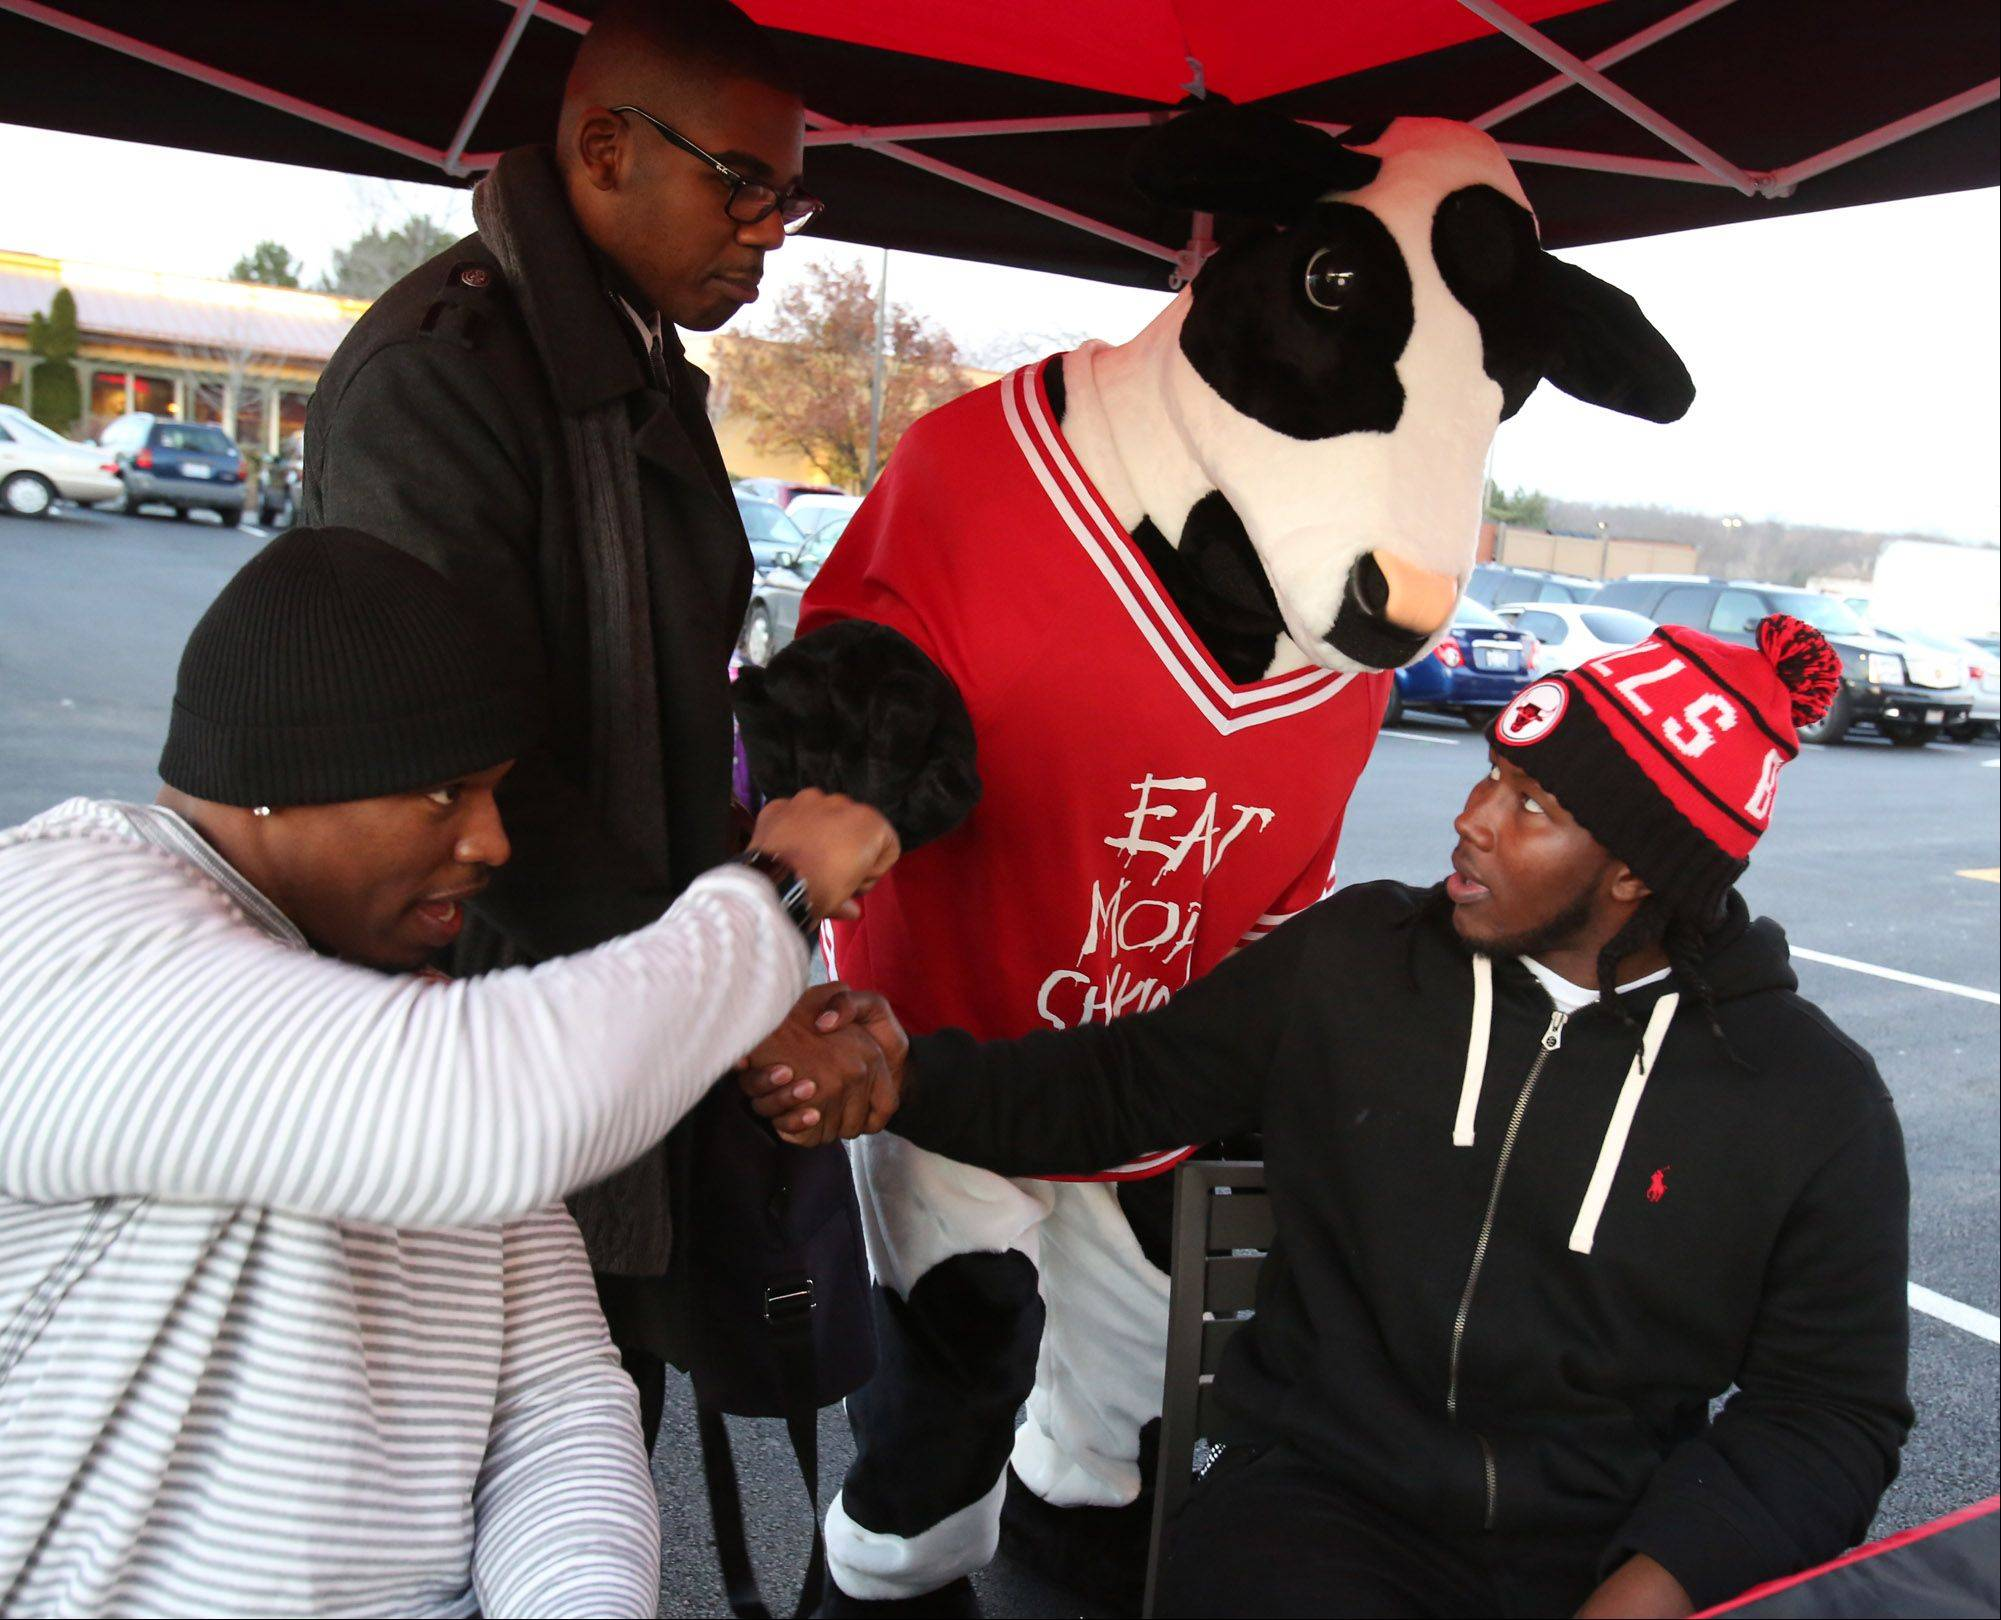 Chicago Bears linebacker Khaseem Greene, right, gets a knuckles bump from Brandon Hurst of Chick-fil-A Inc. while practice squad tight end Fendi Onobun gets a knuckles bump from a Chick-fil-A cow while signing autographs outside of the new Vernon Hills restaurant Friday.